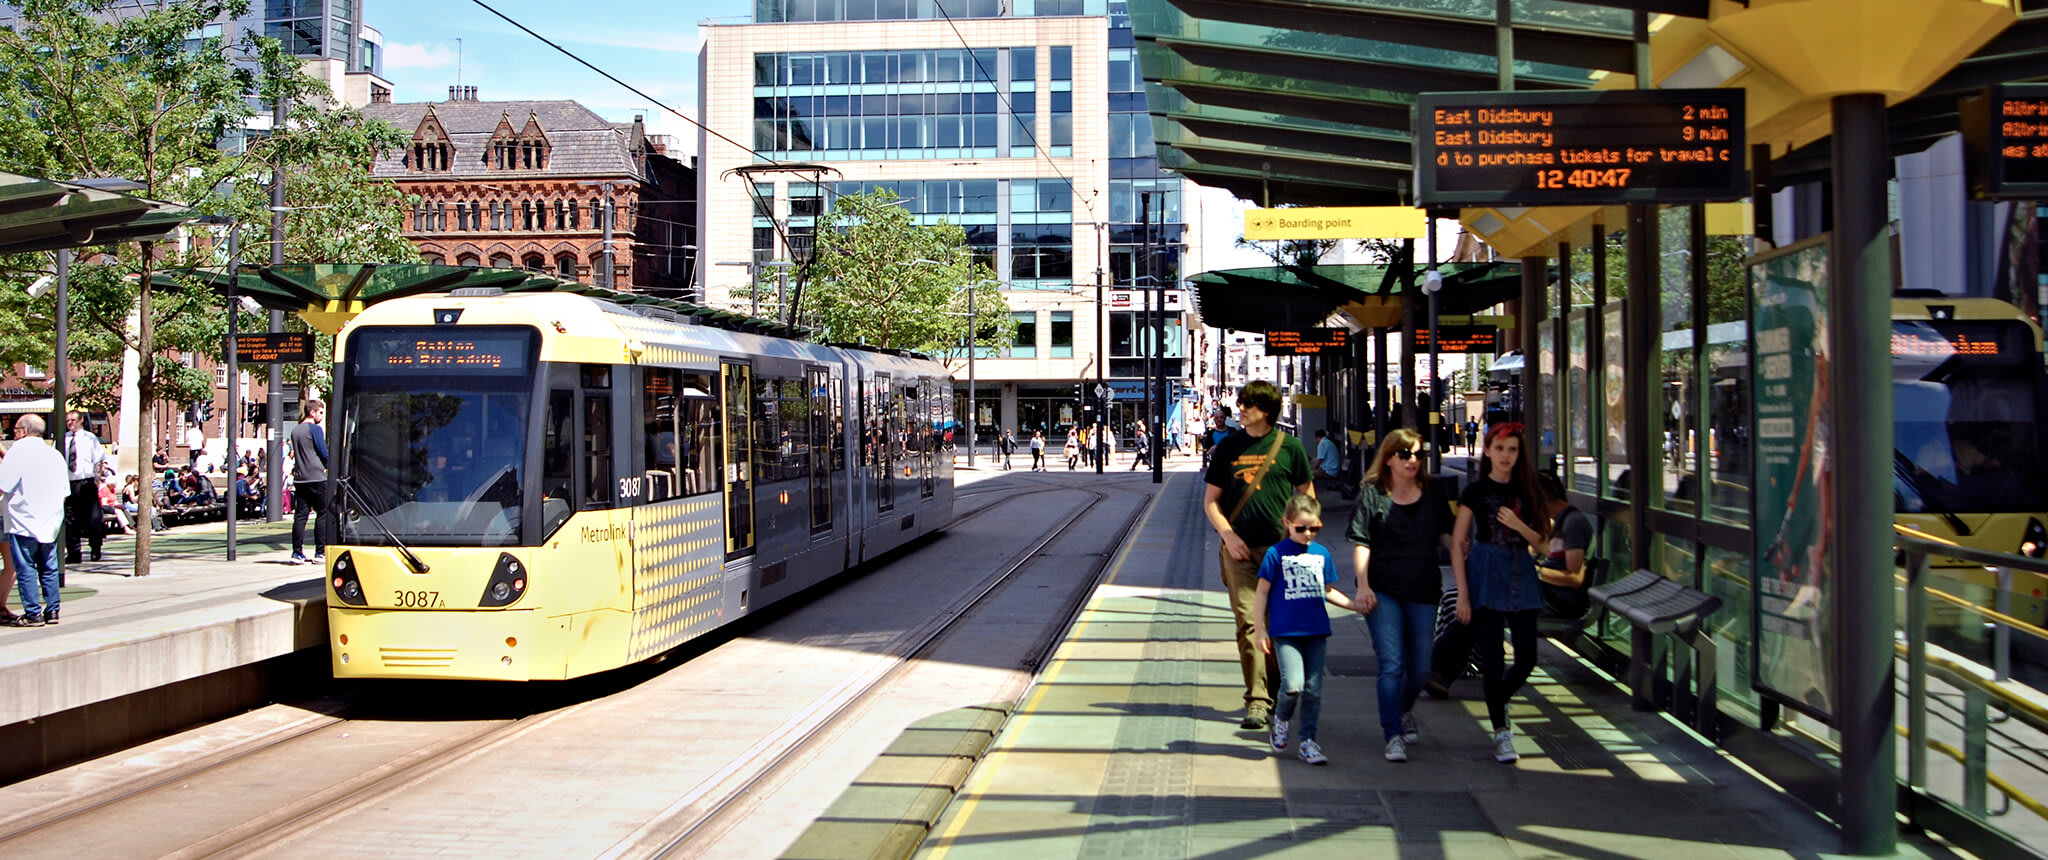 Tram in Manchester City Centre